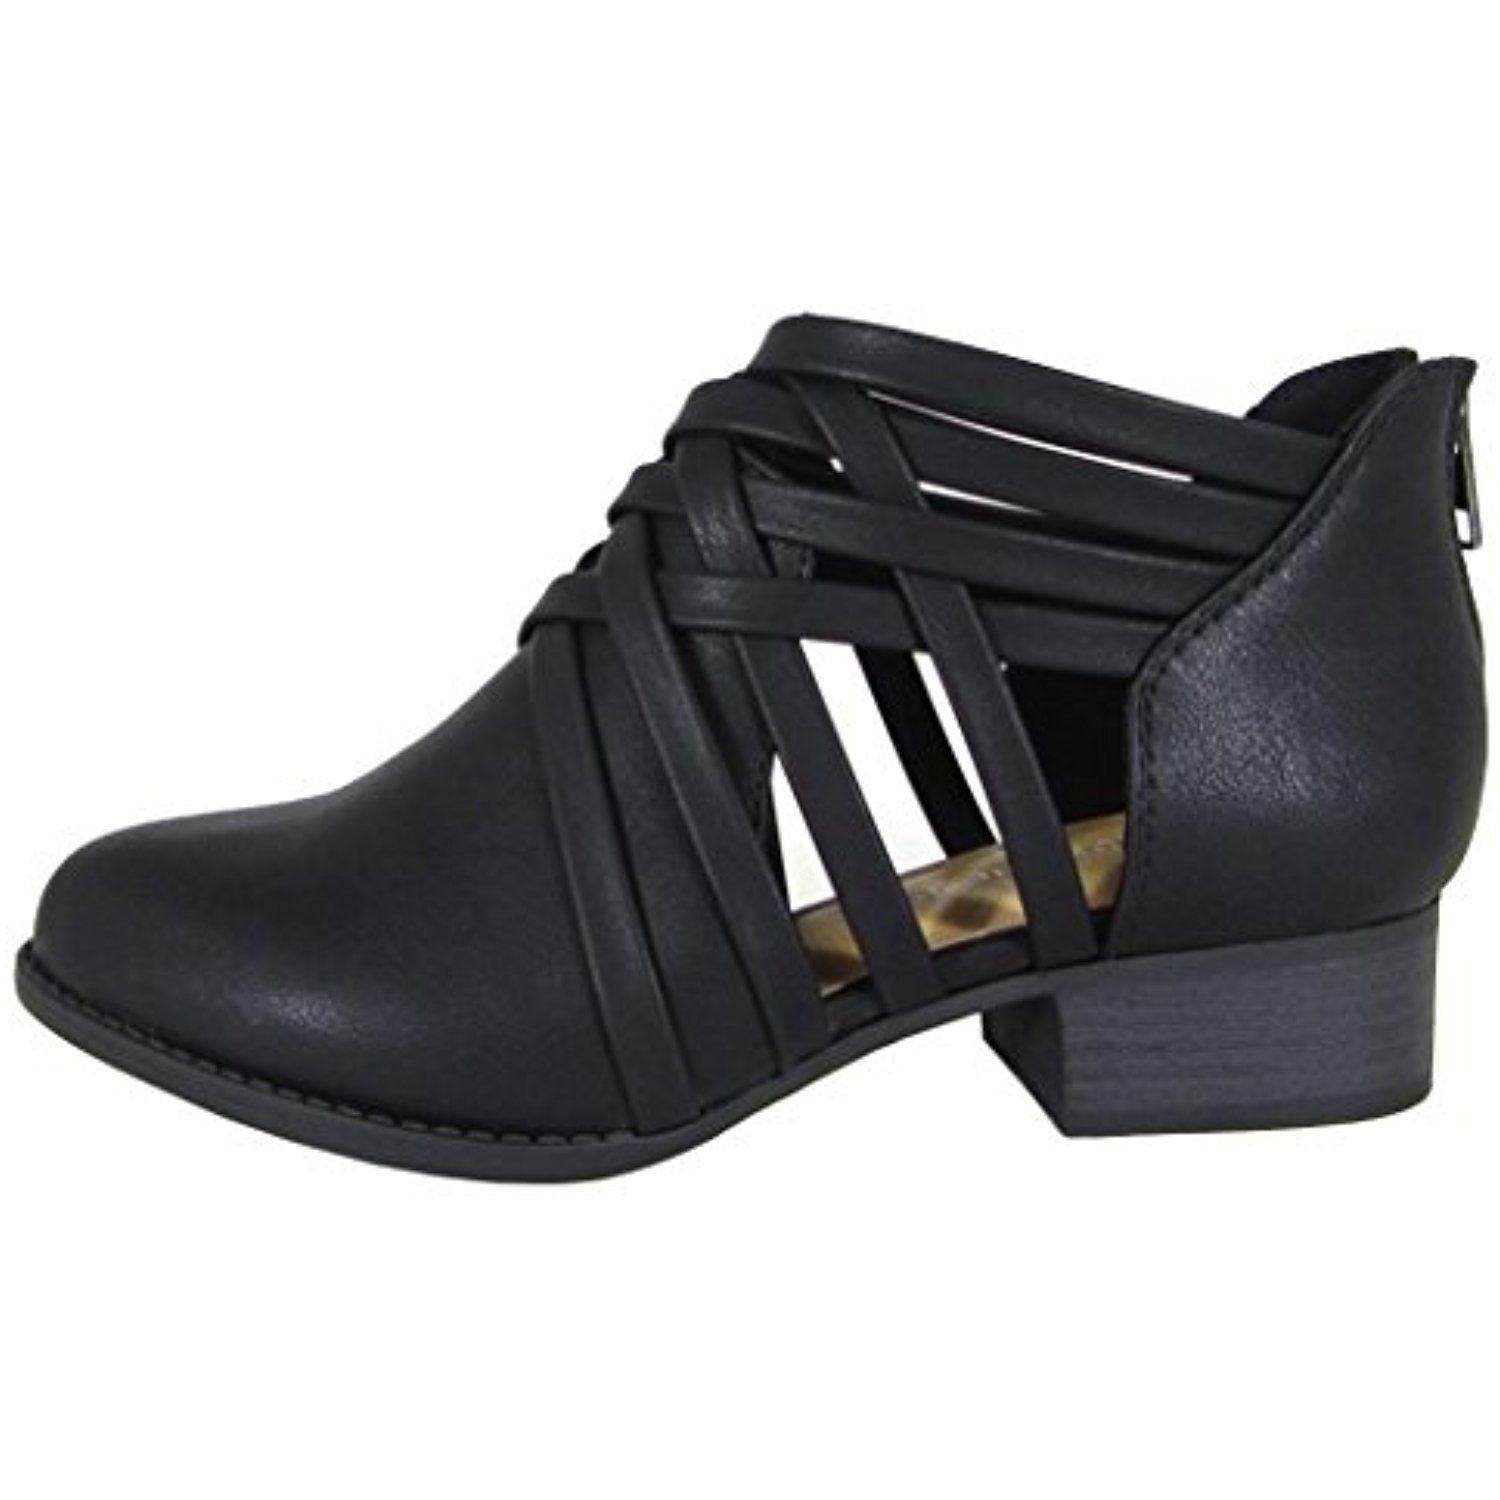 Women's Woven Strappy Cut Out Chunky Stacked Heel Ankle Bootie